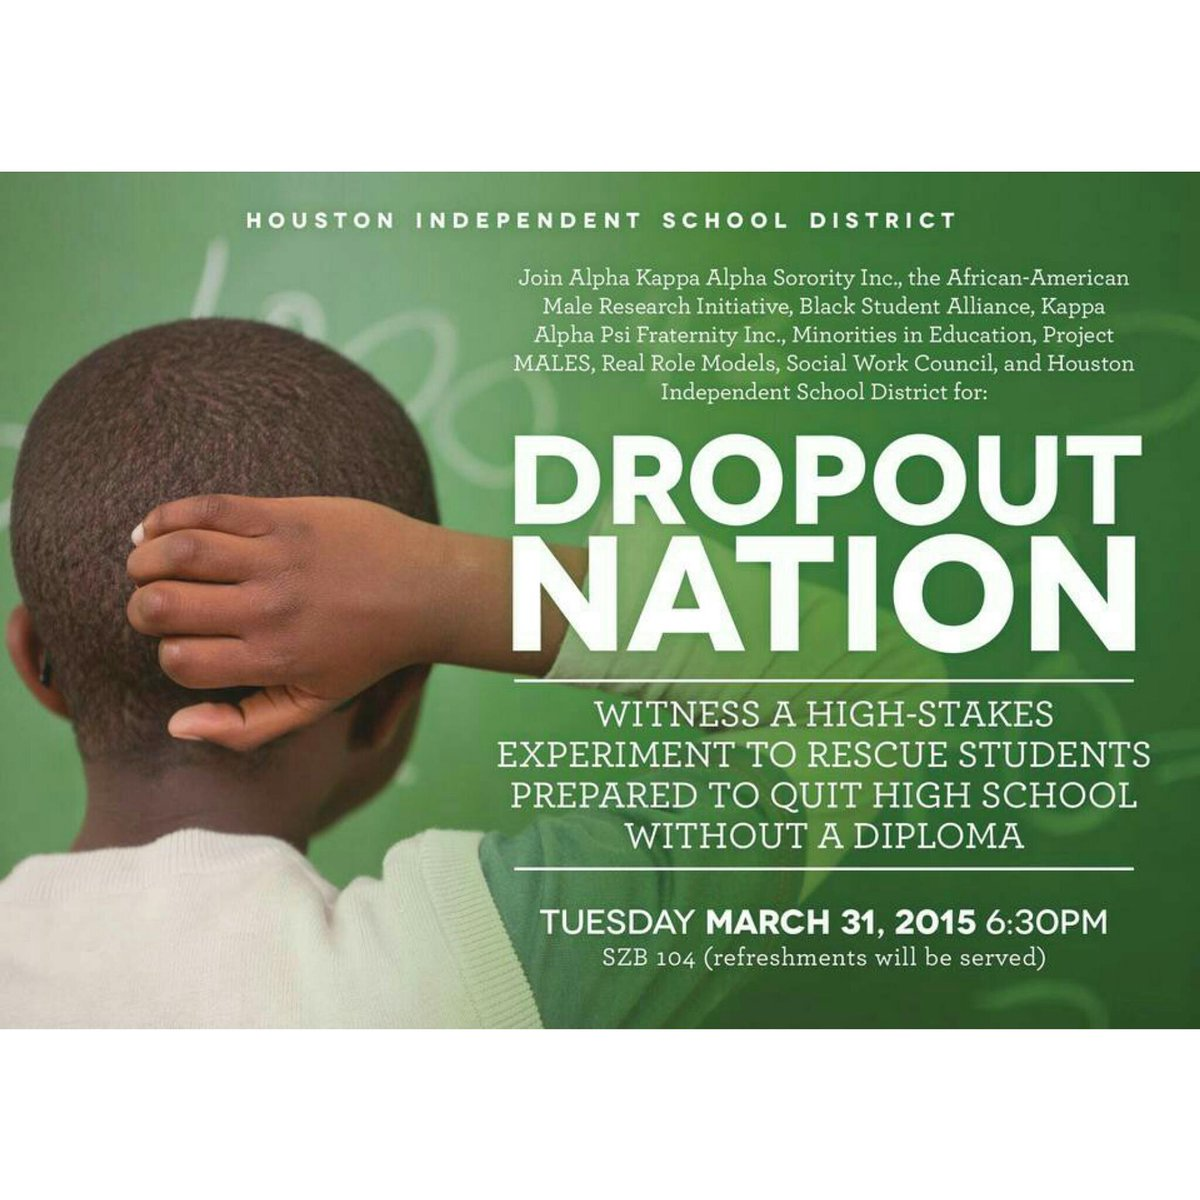 Let's learn how we can spread the gift knowledge. Come out tonight. 6:30. SZB 104. #dropoutnation http://t.co/KzMc1fEJzn